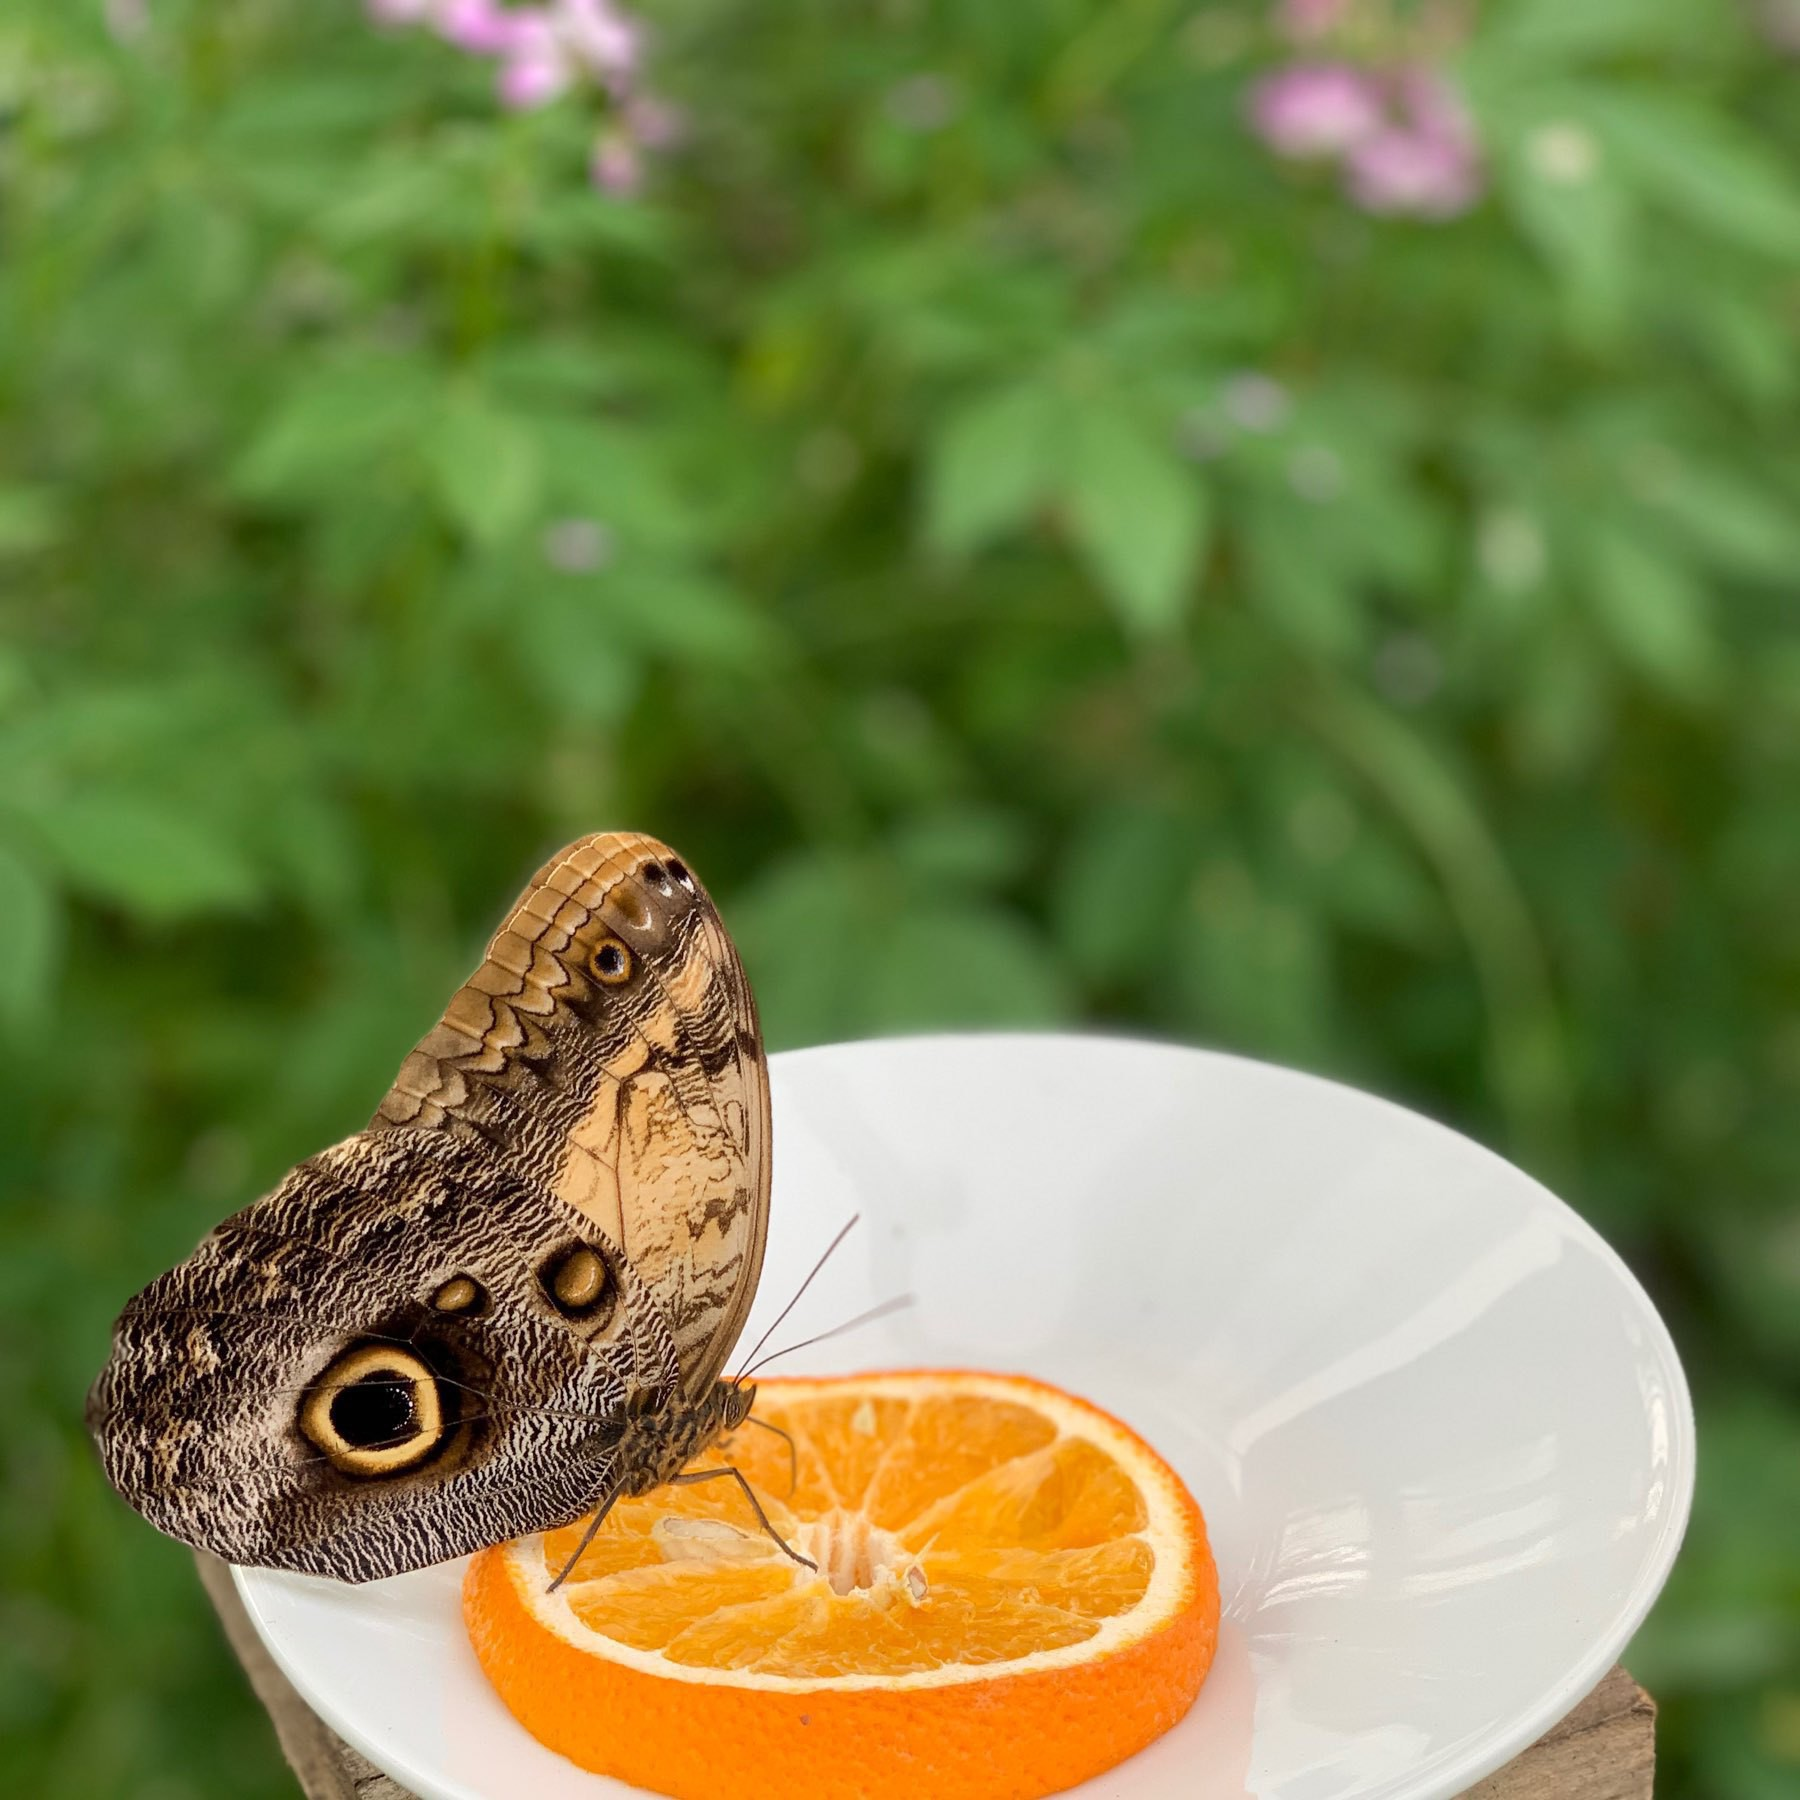 butterfly on an orange slice